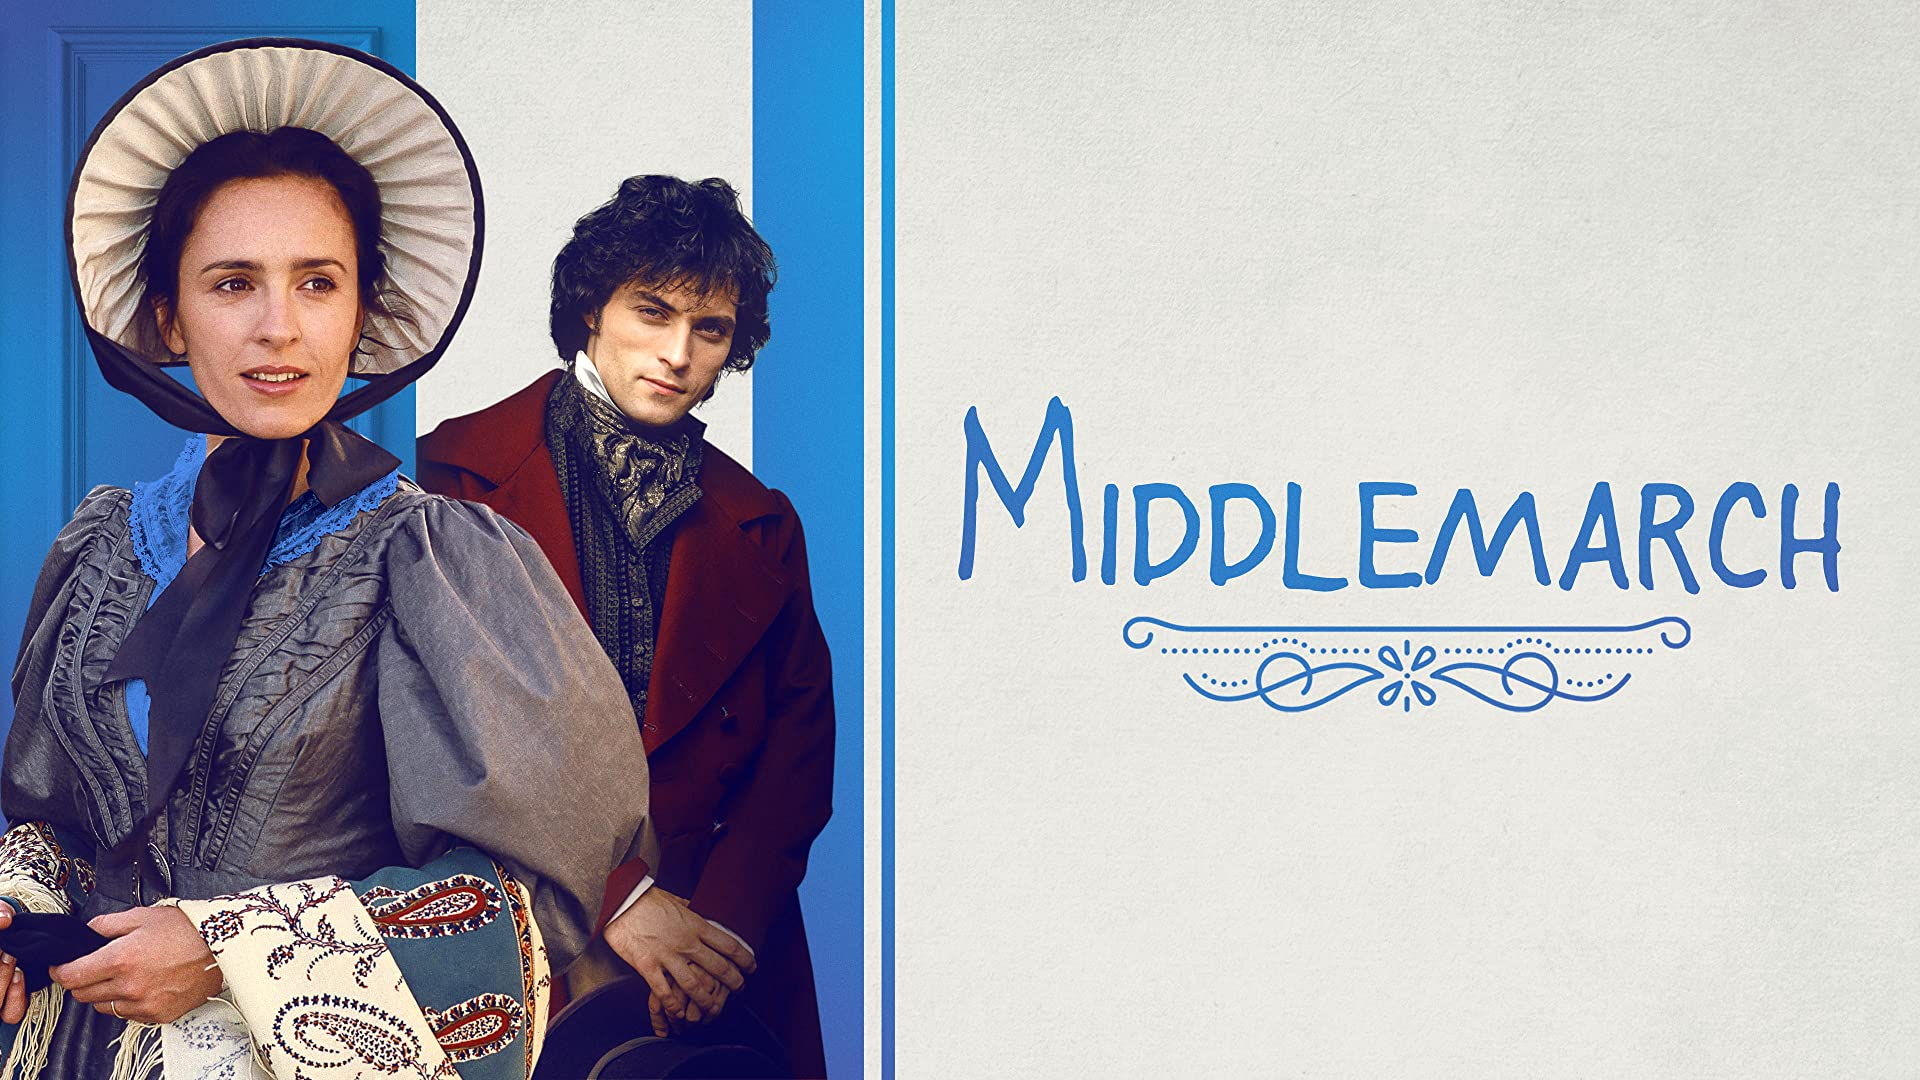 Middlemarch S1